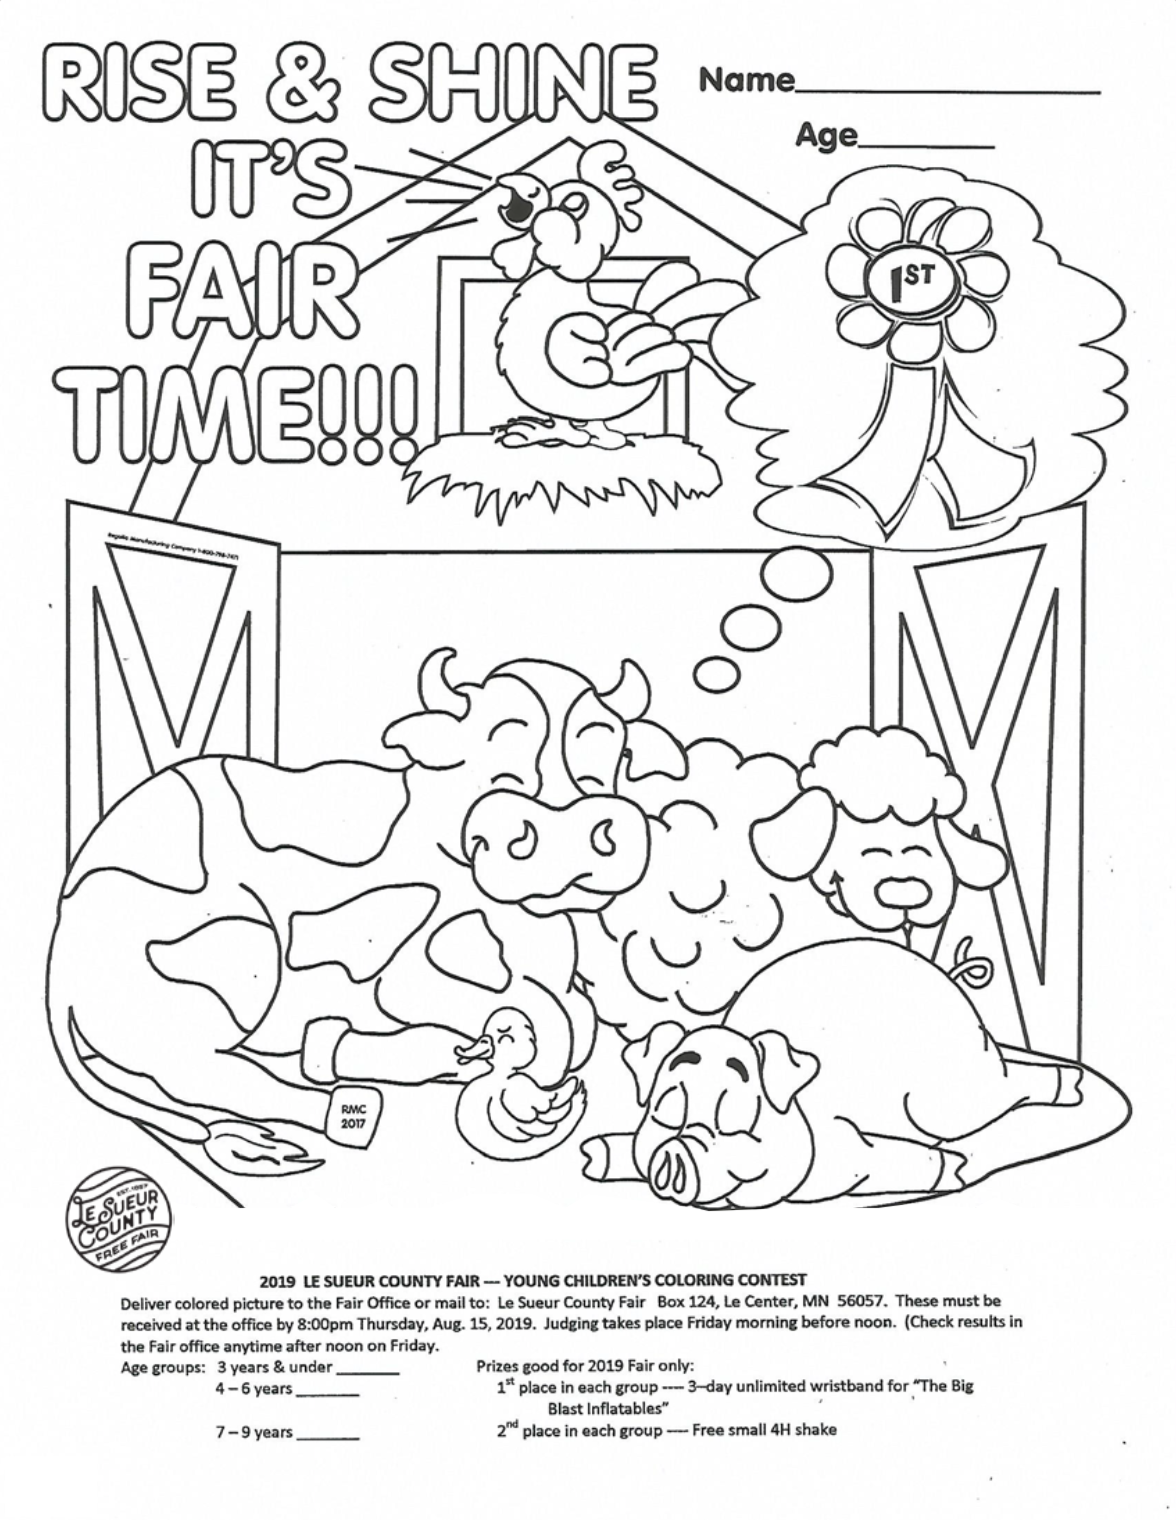 DOWNLOAD COLORING CONTEST PAGE